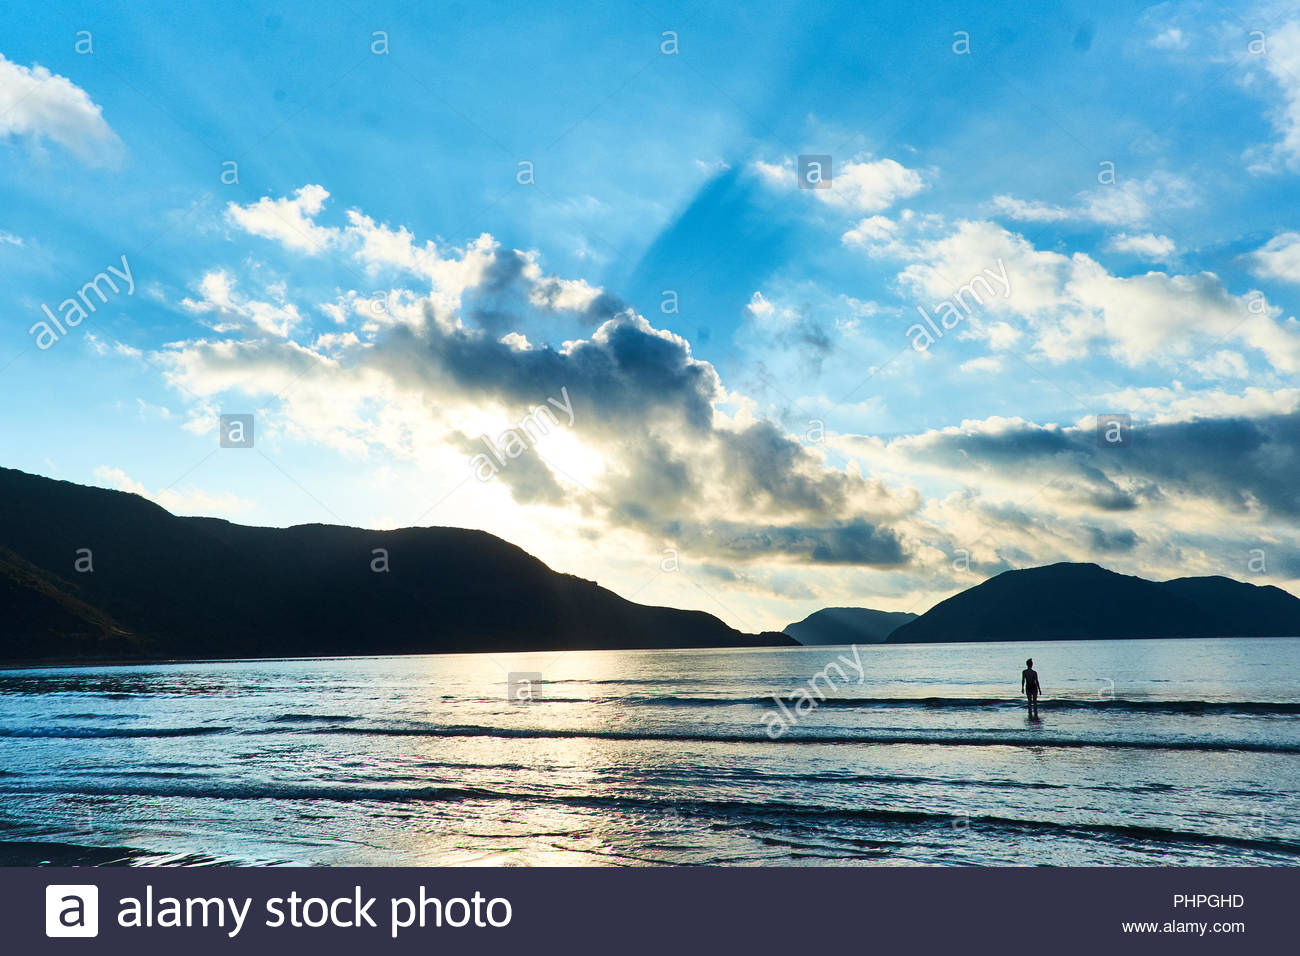 Silhouette of woman on beach at sunset Photo Stock